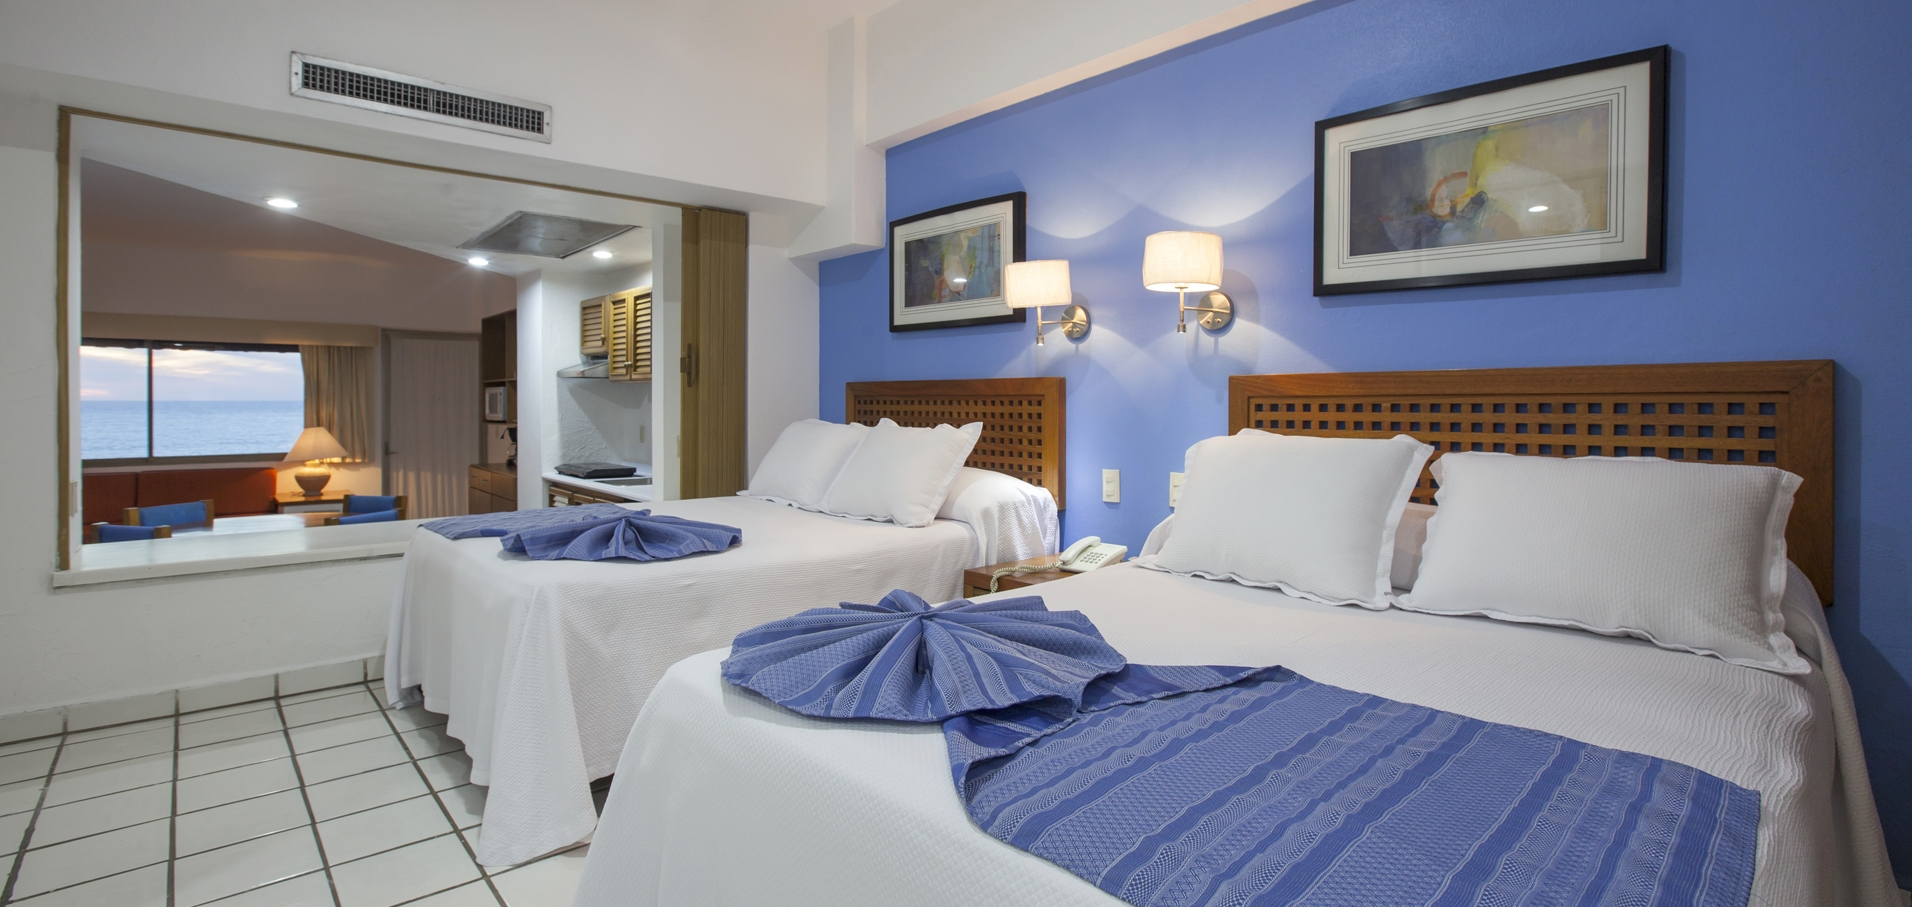 Suite with kitchenette and sea view